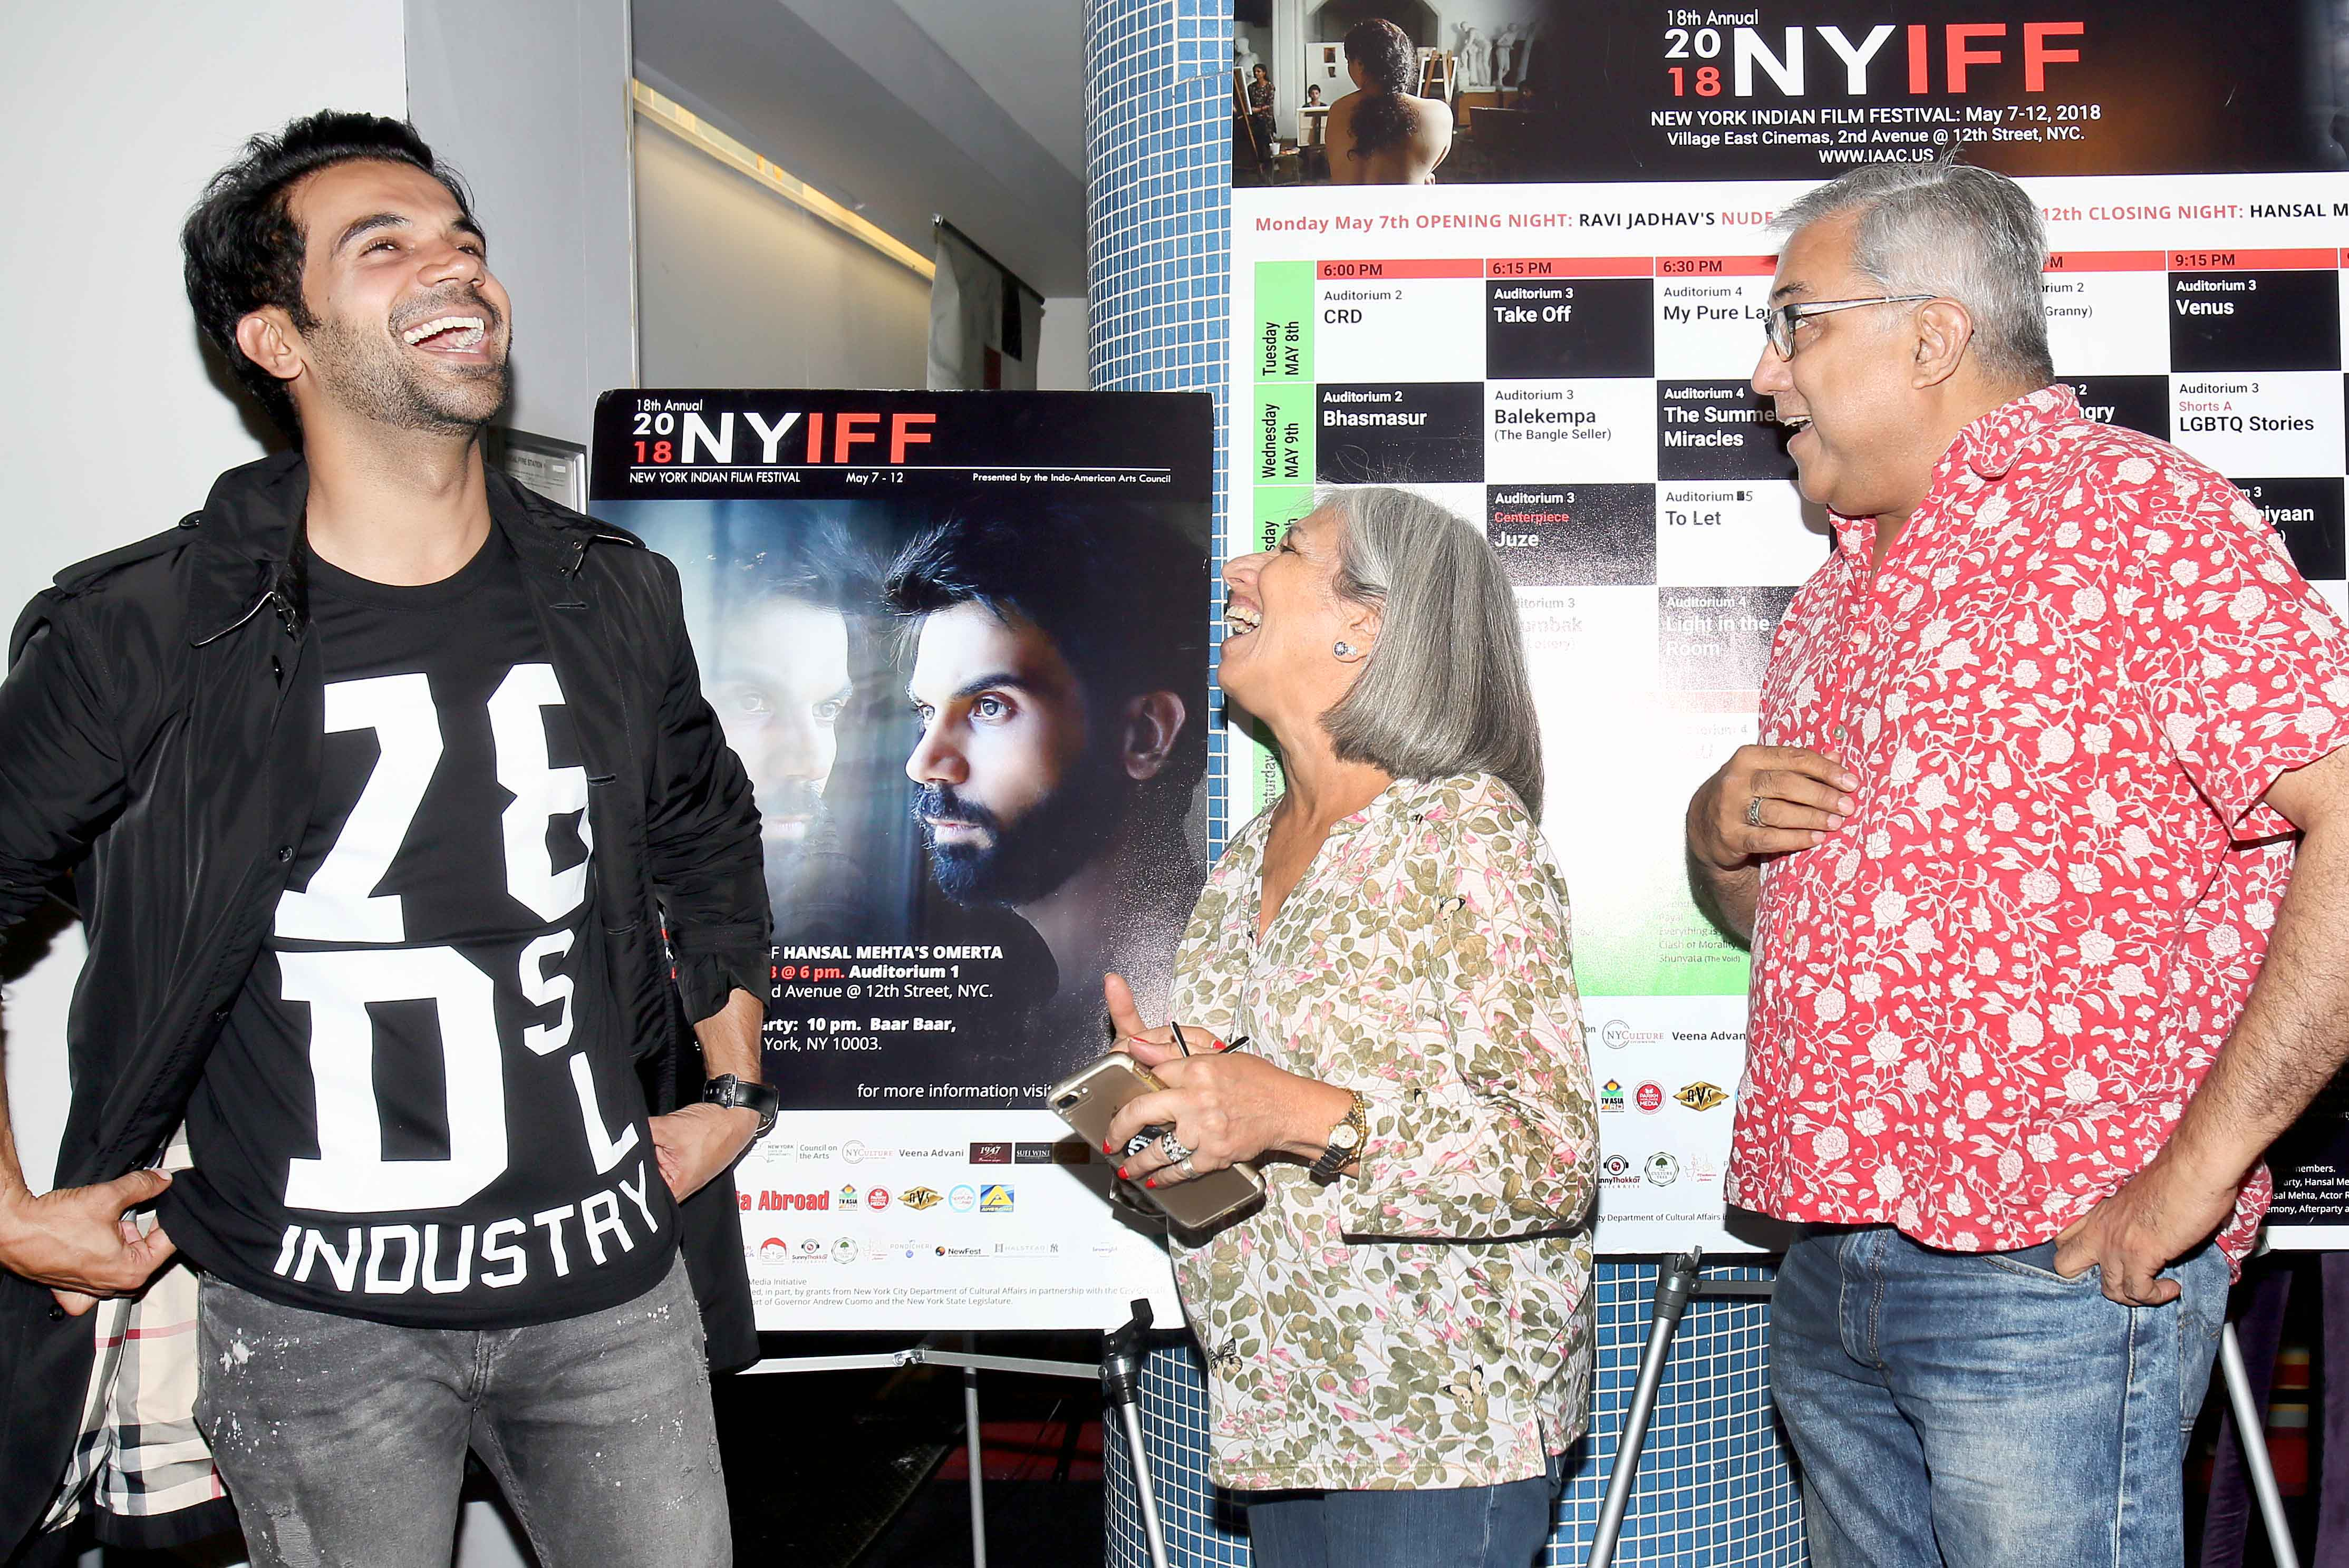 Nude wins Best Film award at NYIFF 2018 | News India Times